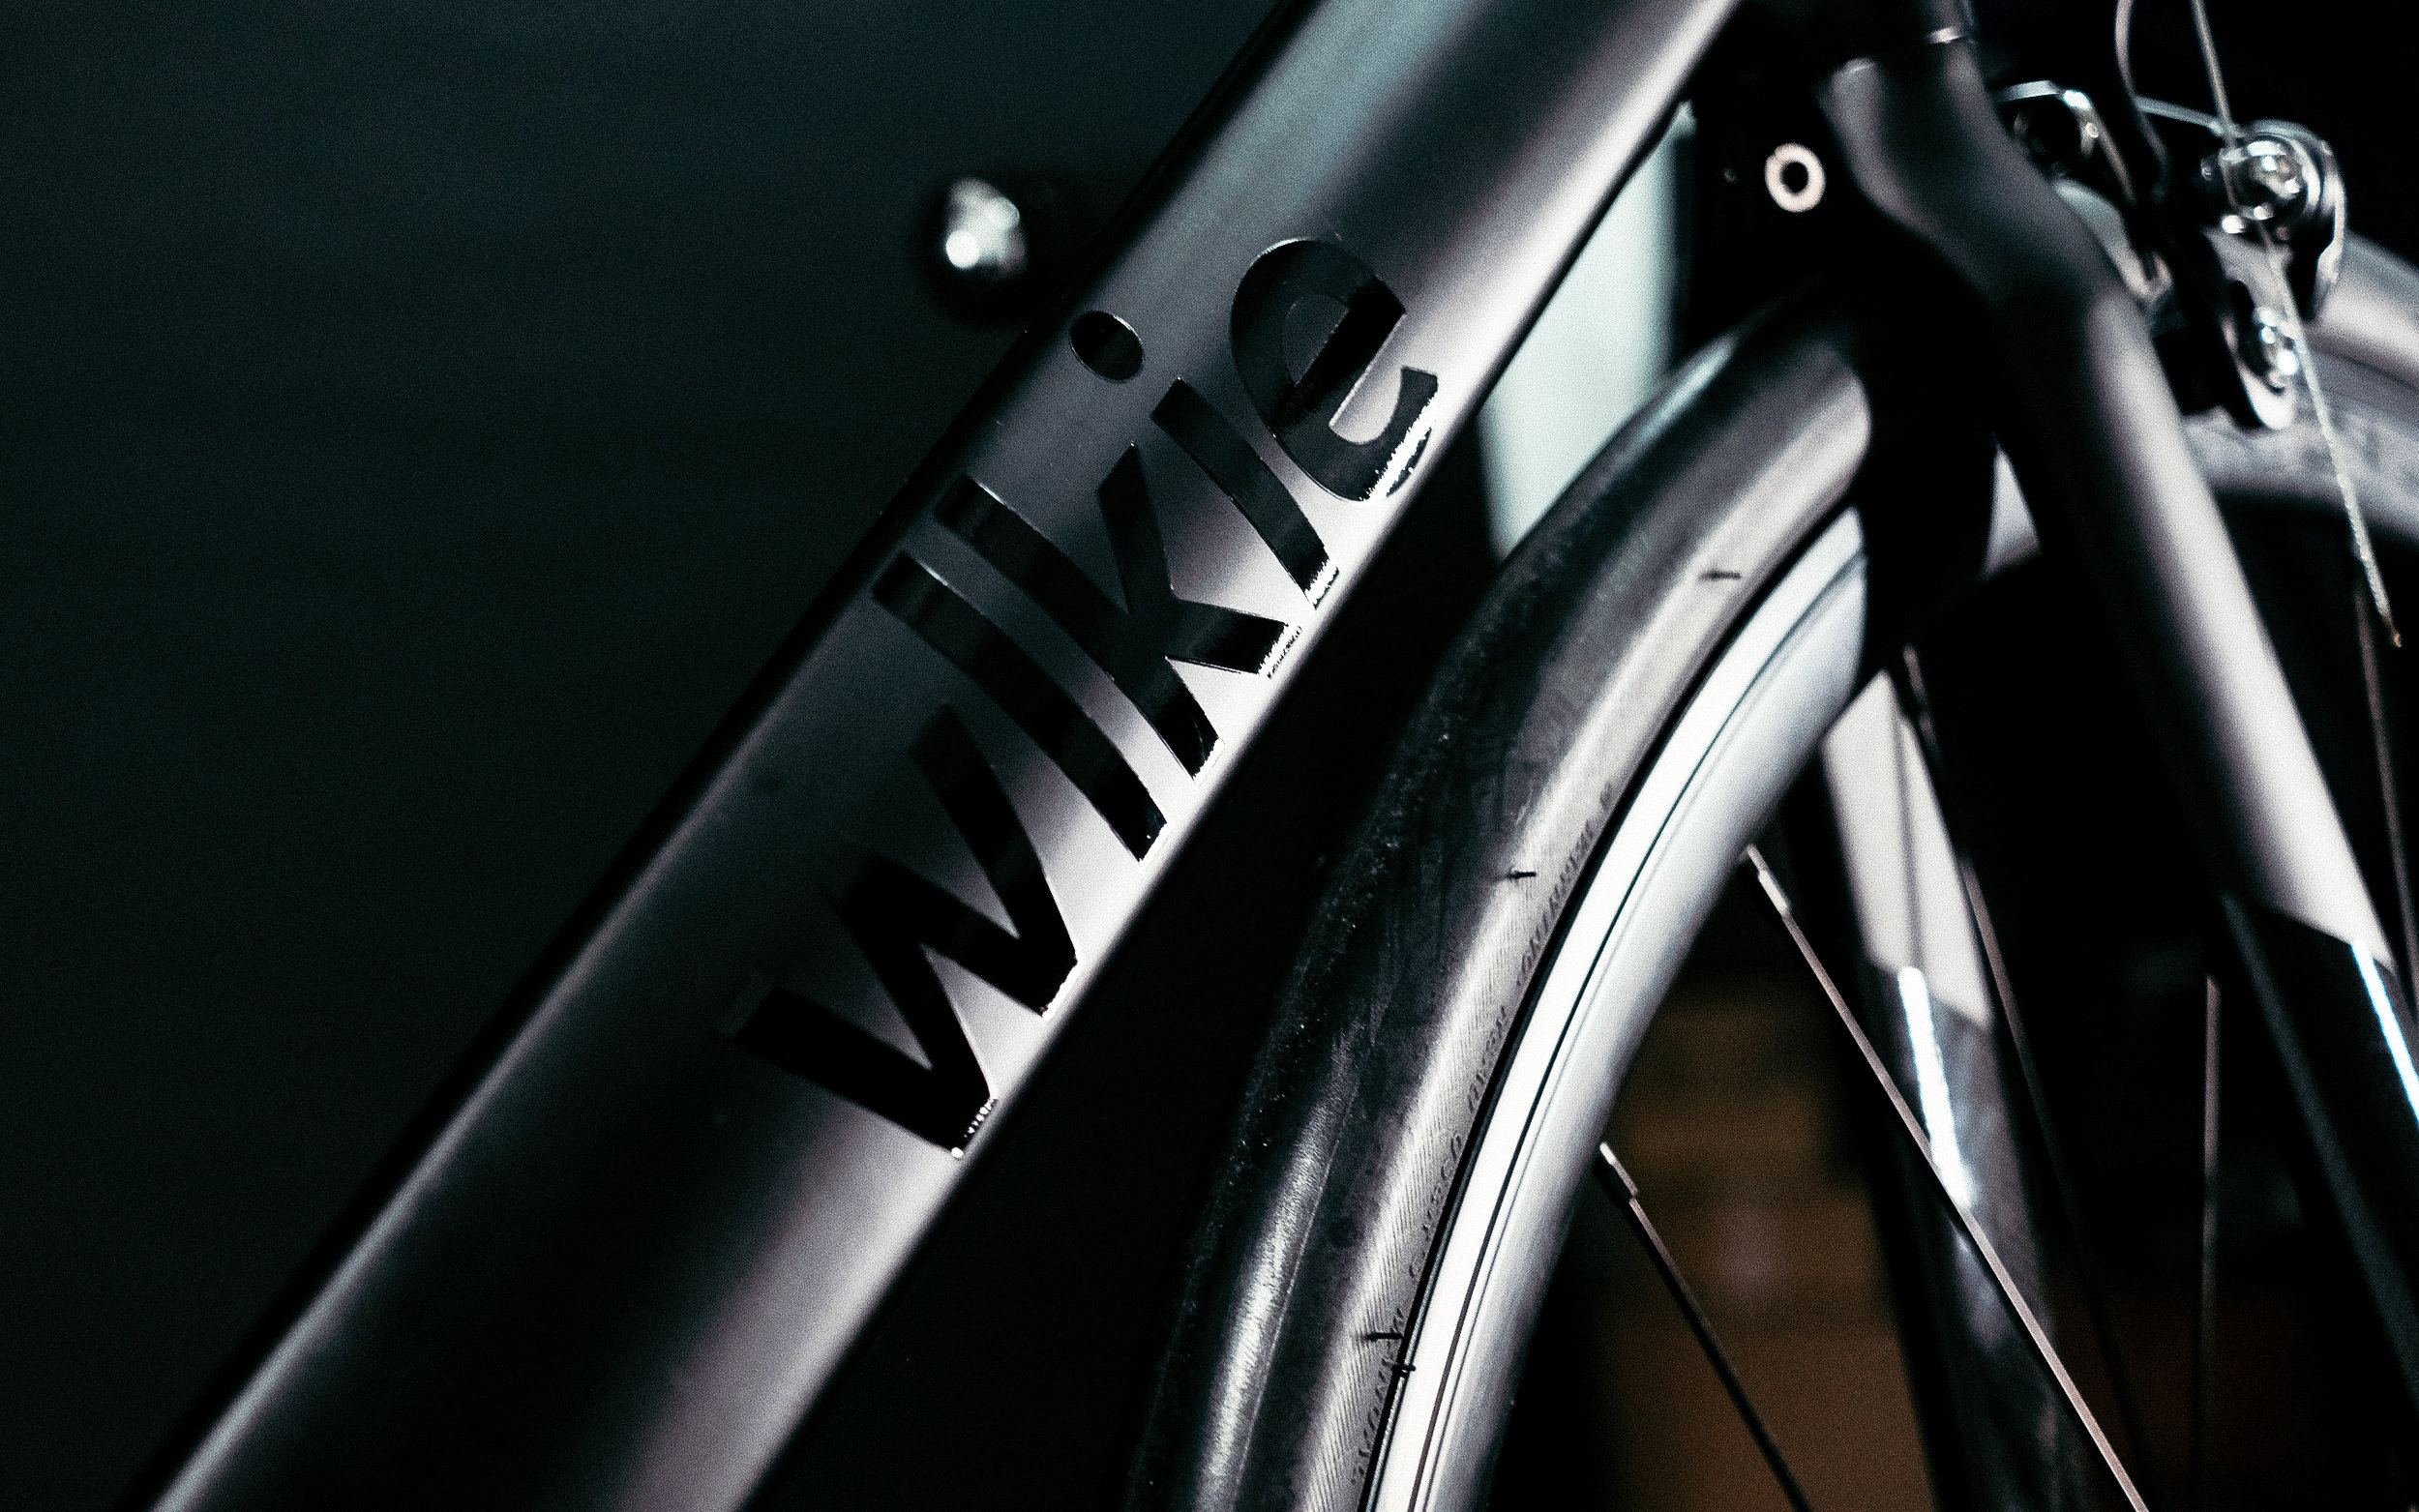 Product Video - Wlkie Cycles